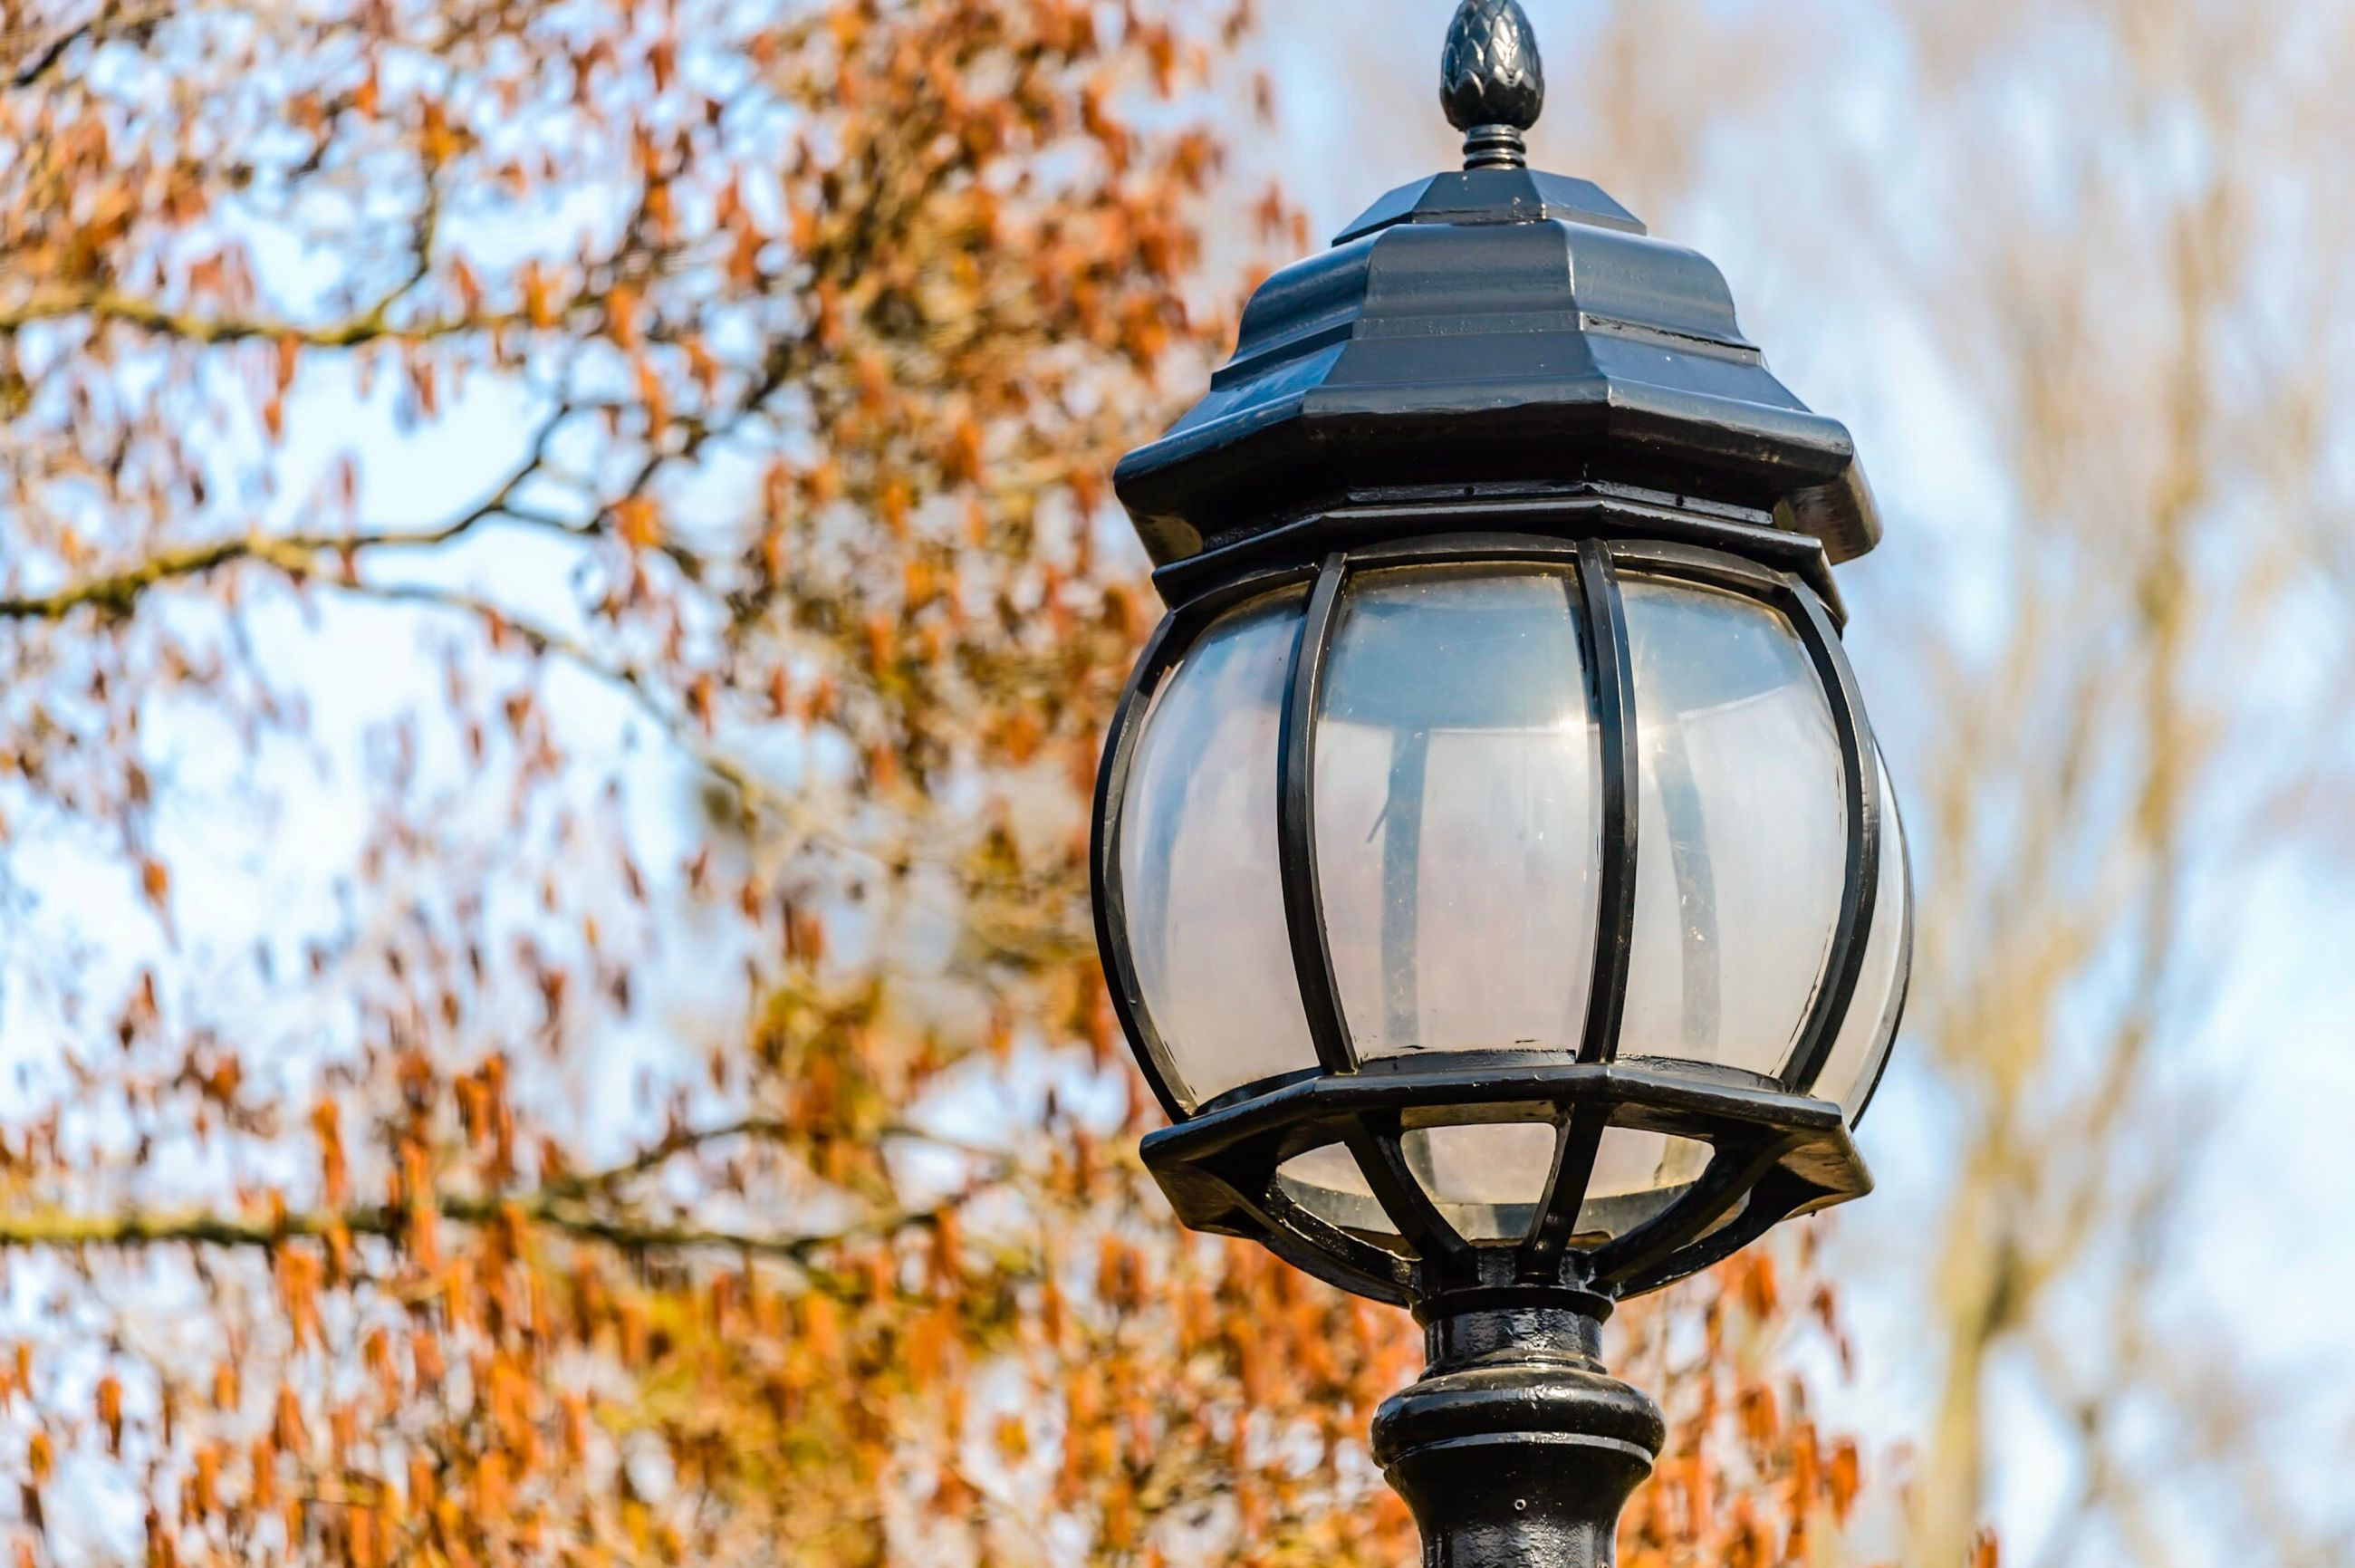 low angle view, lighting equipment, sky, outdoors, no people, old-fashioned, bare tree, gas light, city, nature, beauty in nature, architecture, day